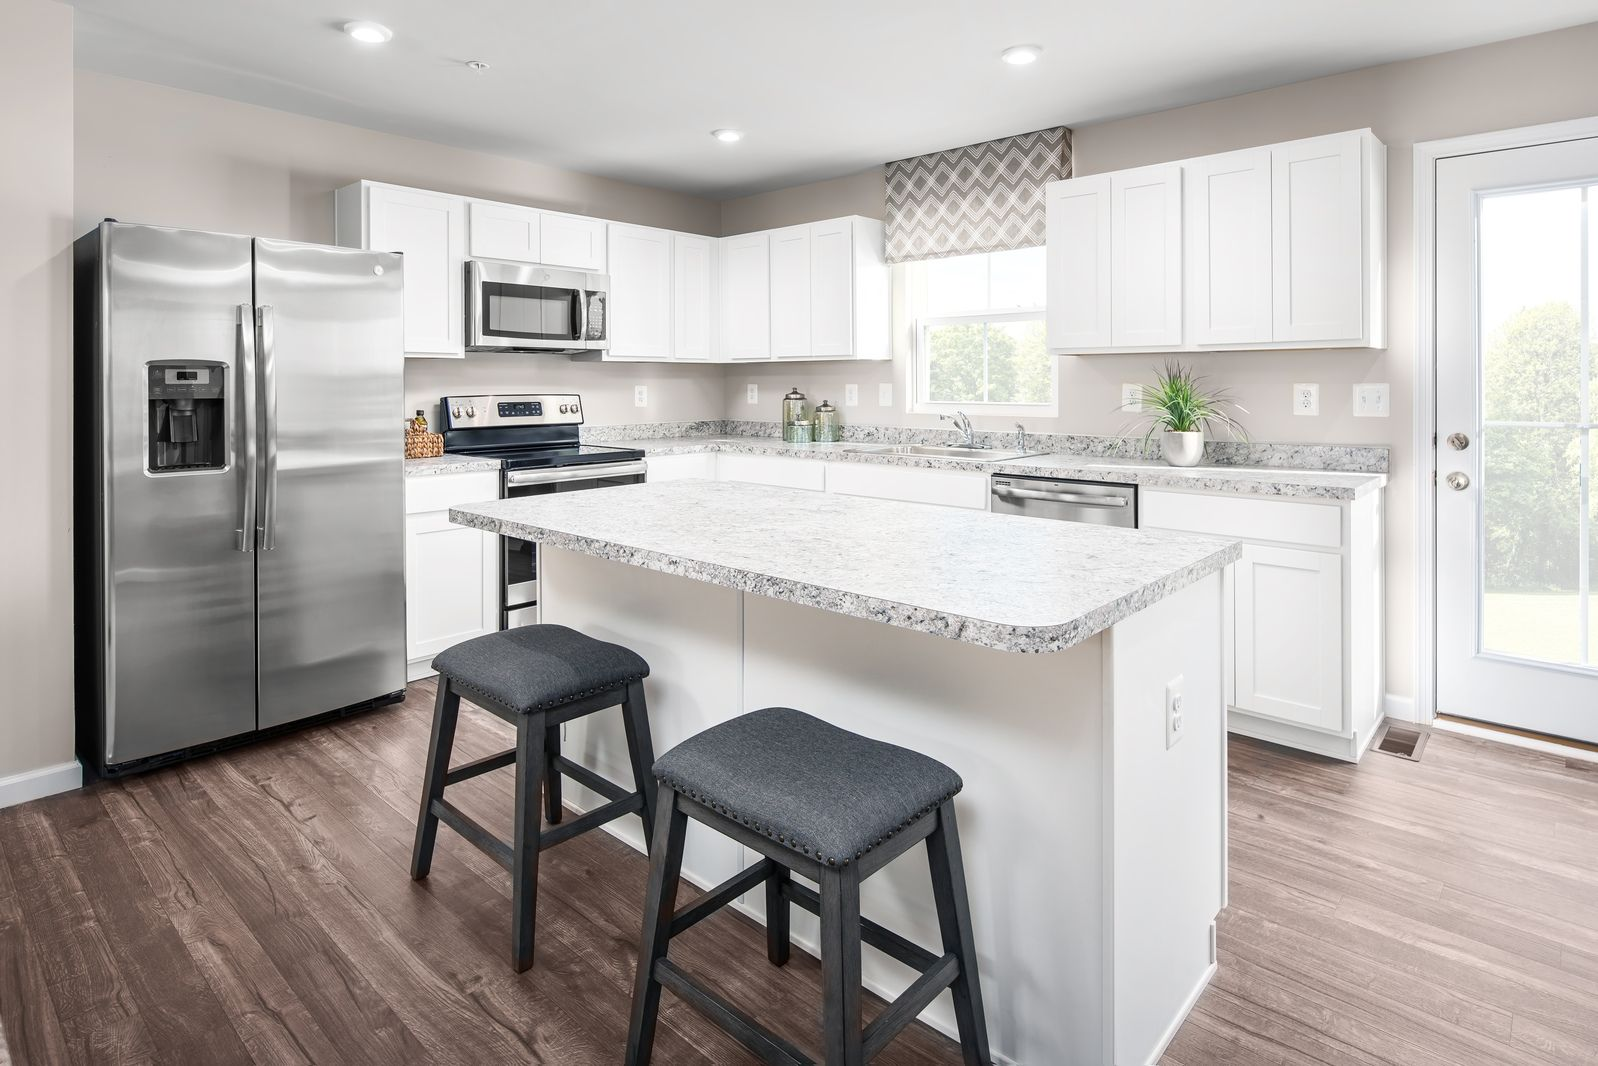 Camden Creek: New Homesites Arriving Late Summer:Small town charm in an ideal location, with amenities, Danville Schools & all appliances included, from mid $200s.Join VIP list and be one of the first to know when homesites are released!